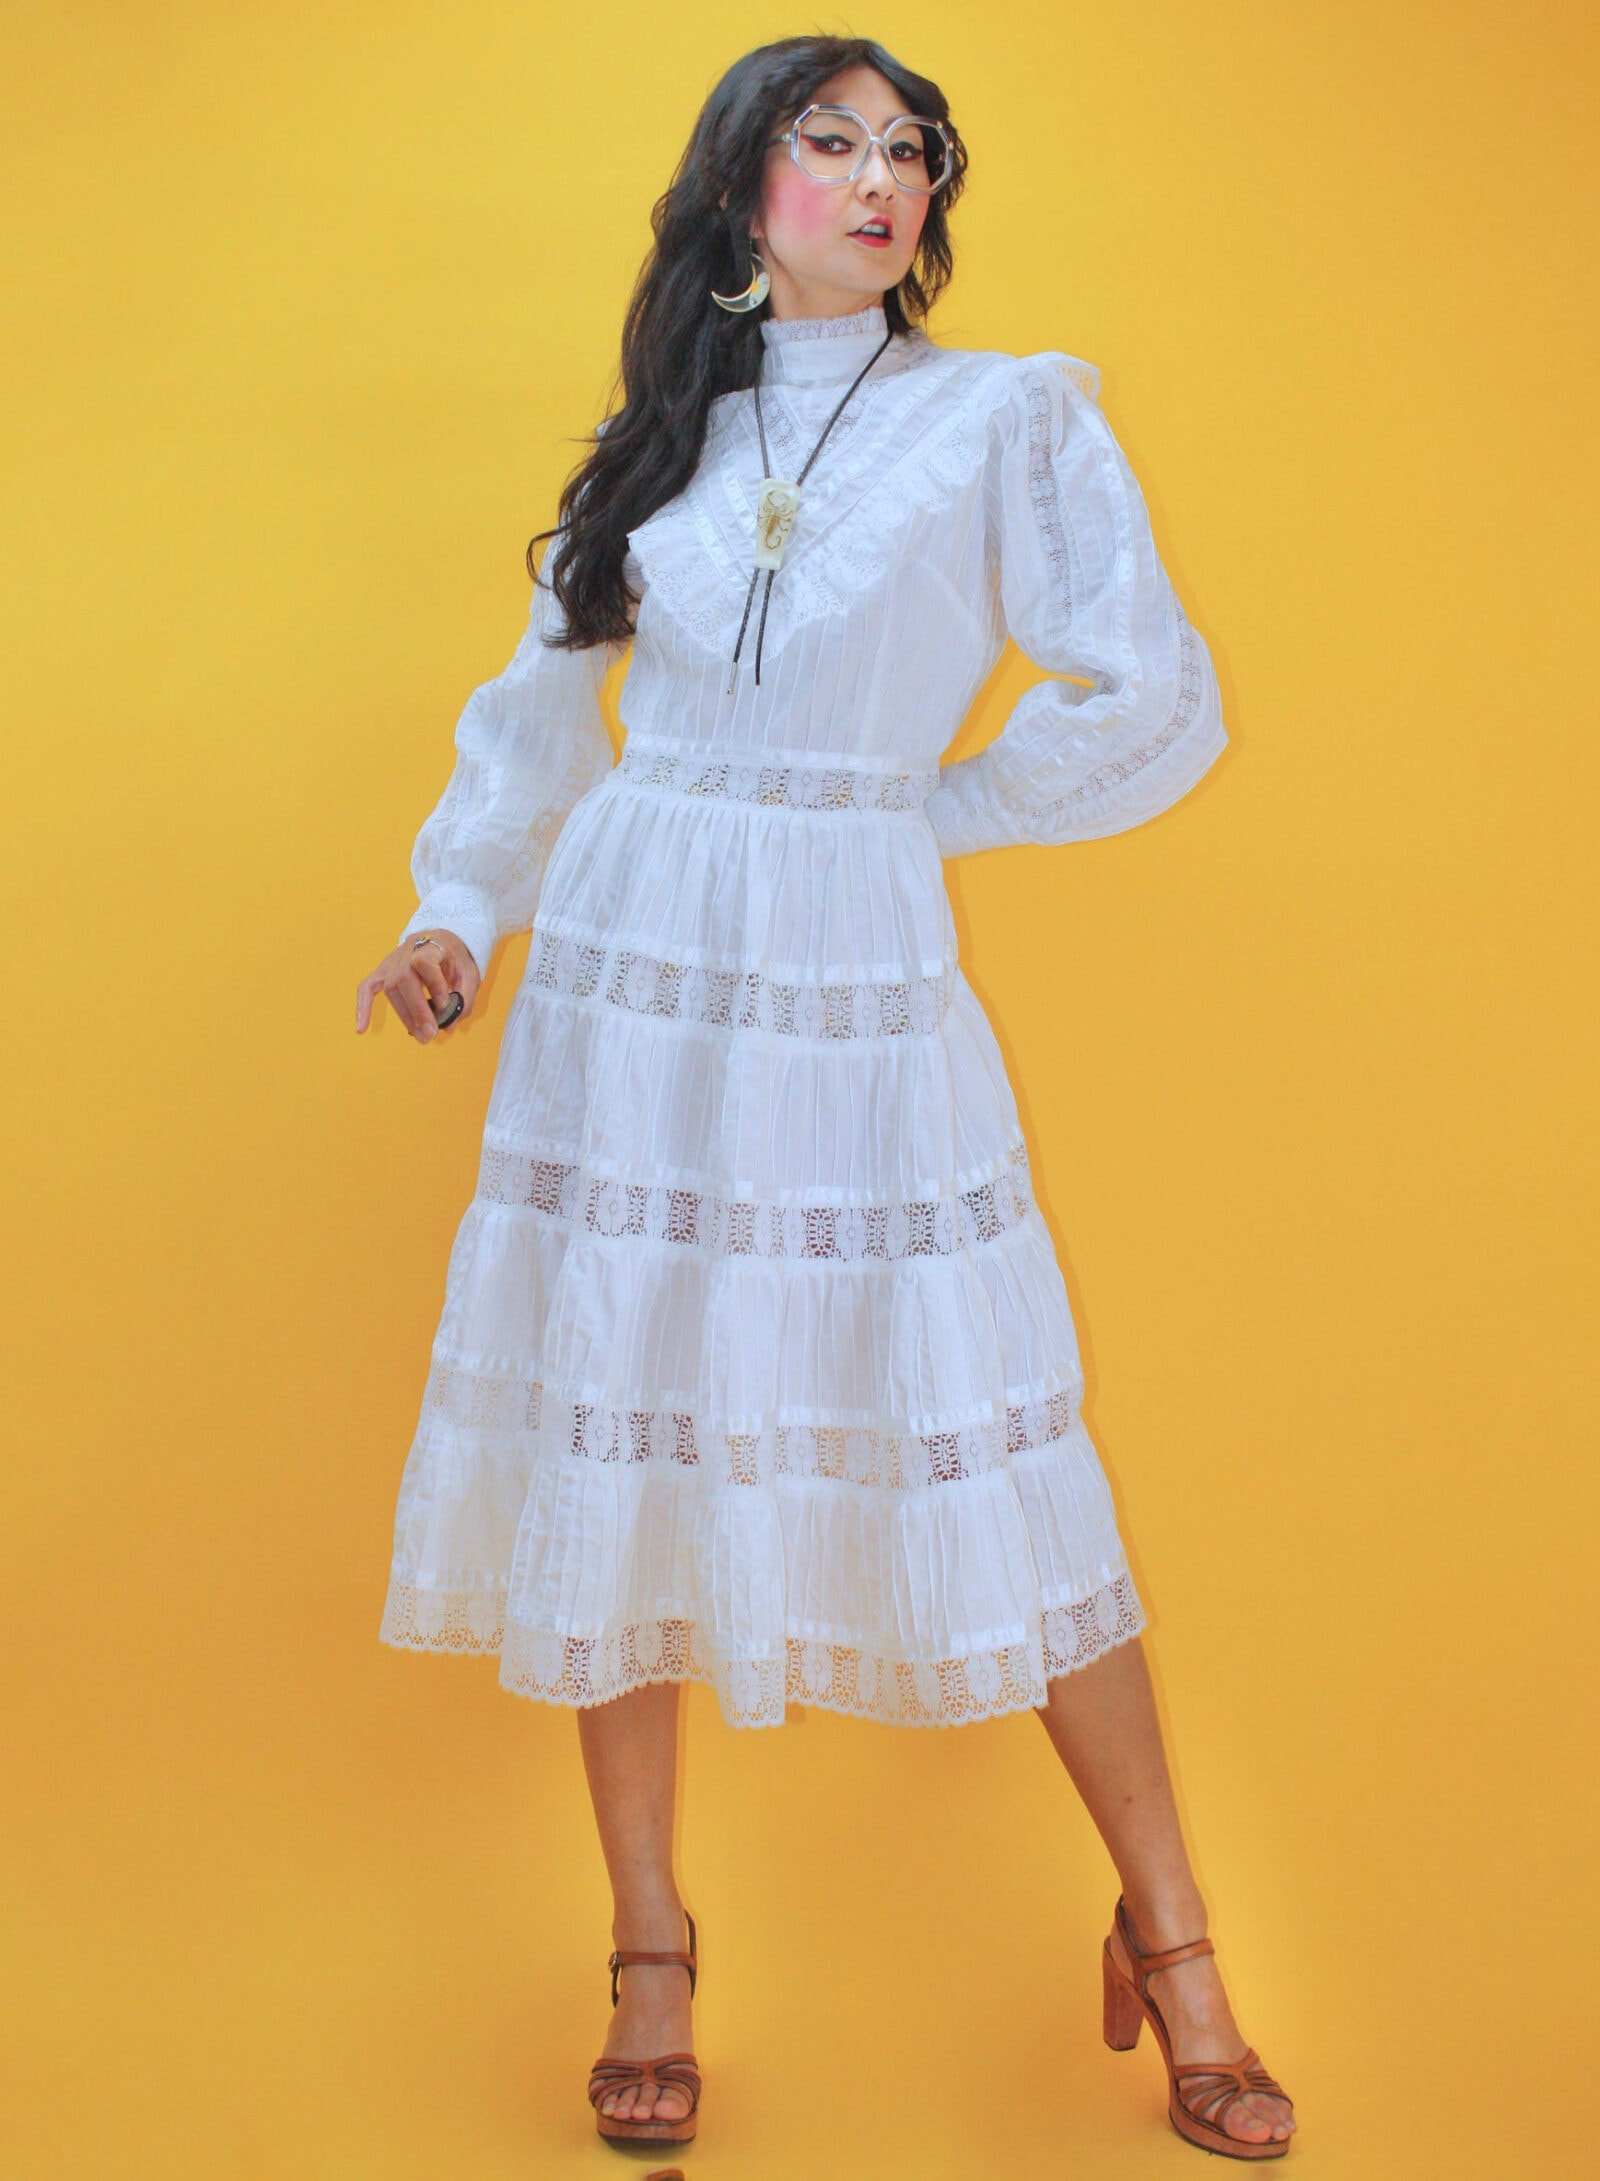 Vintage 1970s Victorian style Mexican Wedding Dress :SZ M waist 29: 70s 80s Crochet Lace Ruffle Puff Sleeve White Cotton Pintuck Gown Boho